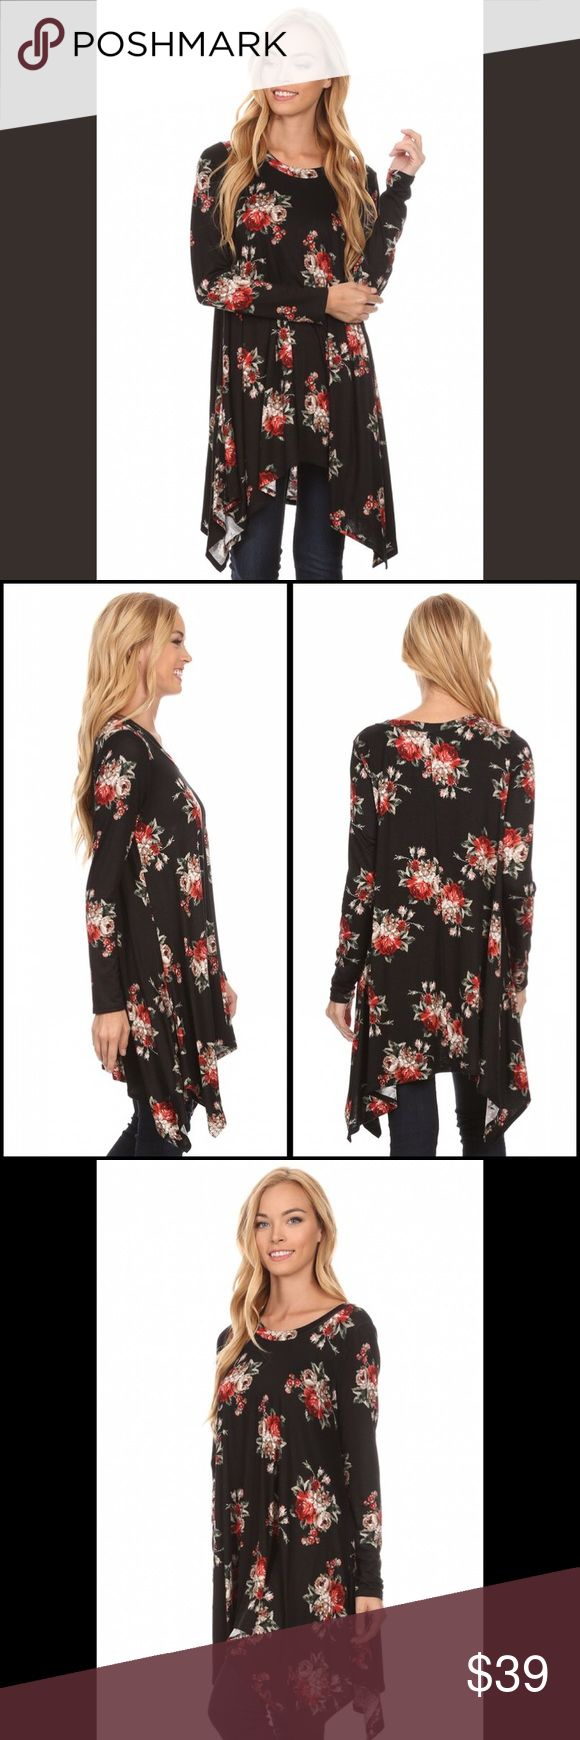 Stunning shark bite hemline floral tunic!! Tuesday Lovely flow and comfort in this stunning autumn  color jet black tunic! arriving Tuesday- ships Wednesday Tops Tunics